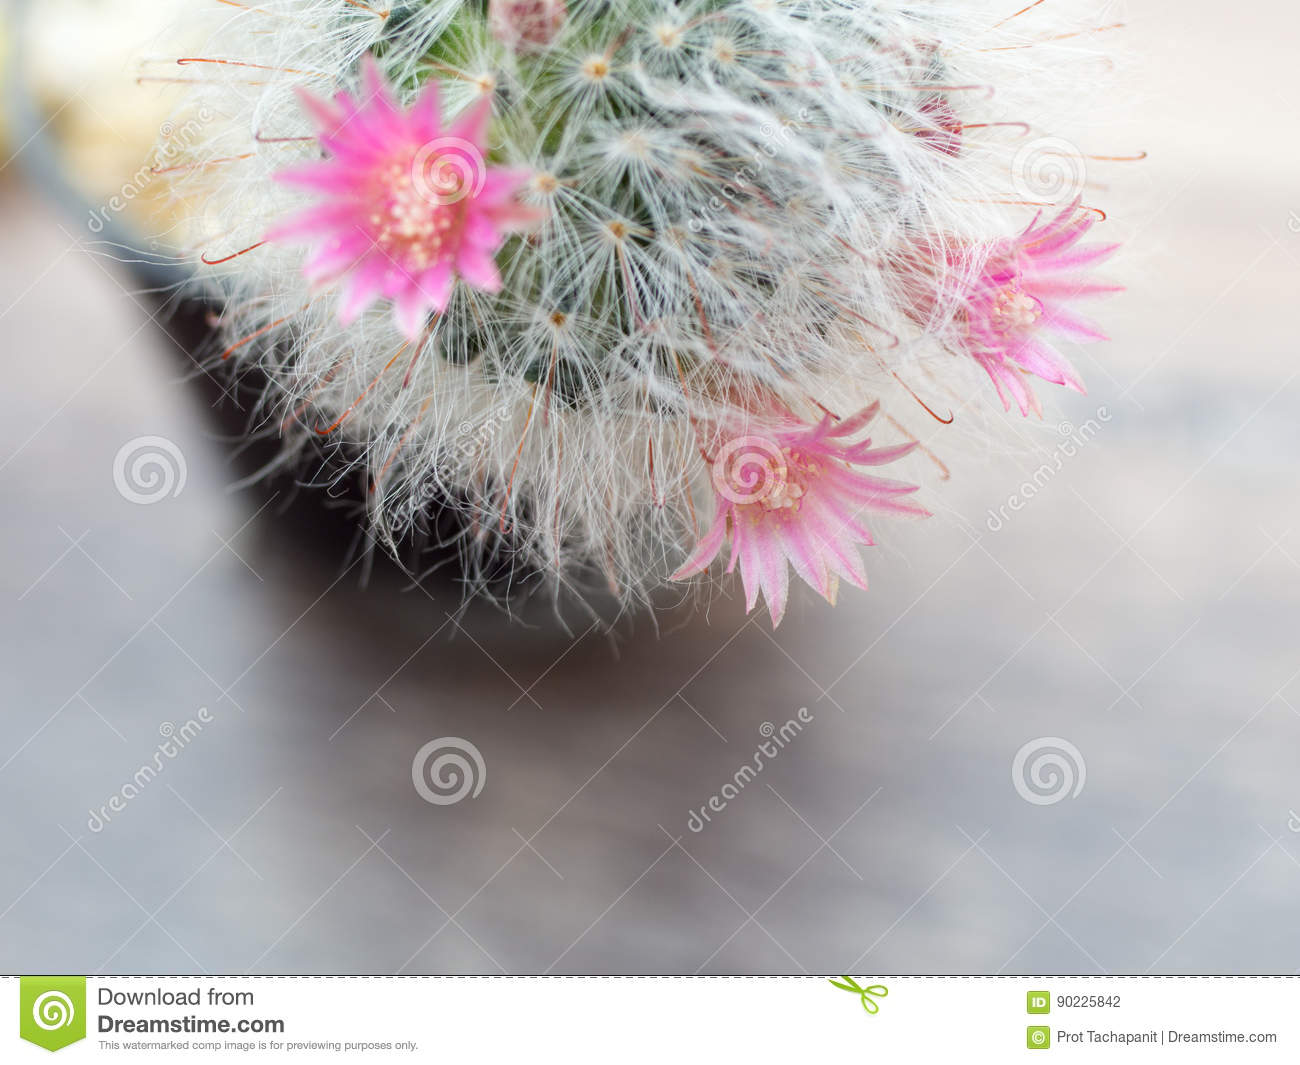 Pink Flowers From Cactus That Have White Hair Like The Hair Of Cat